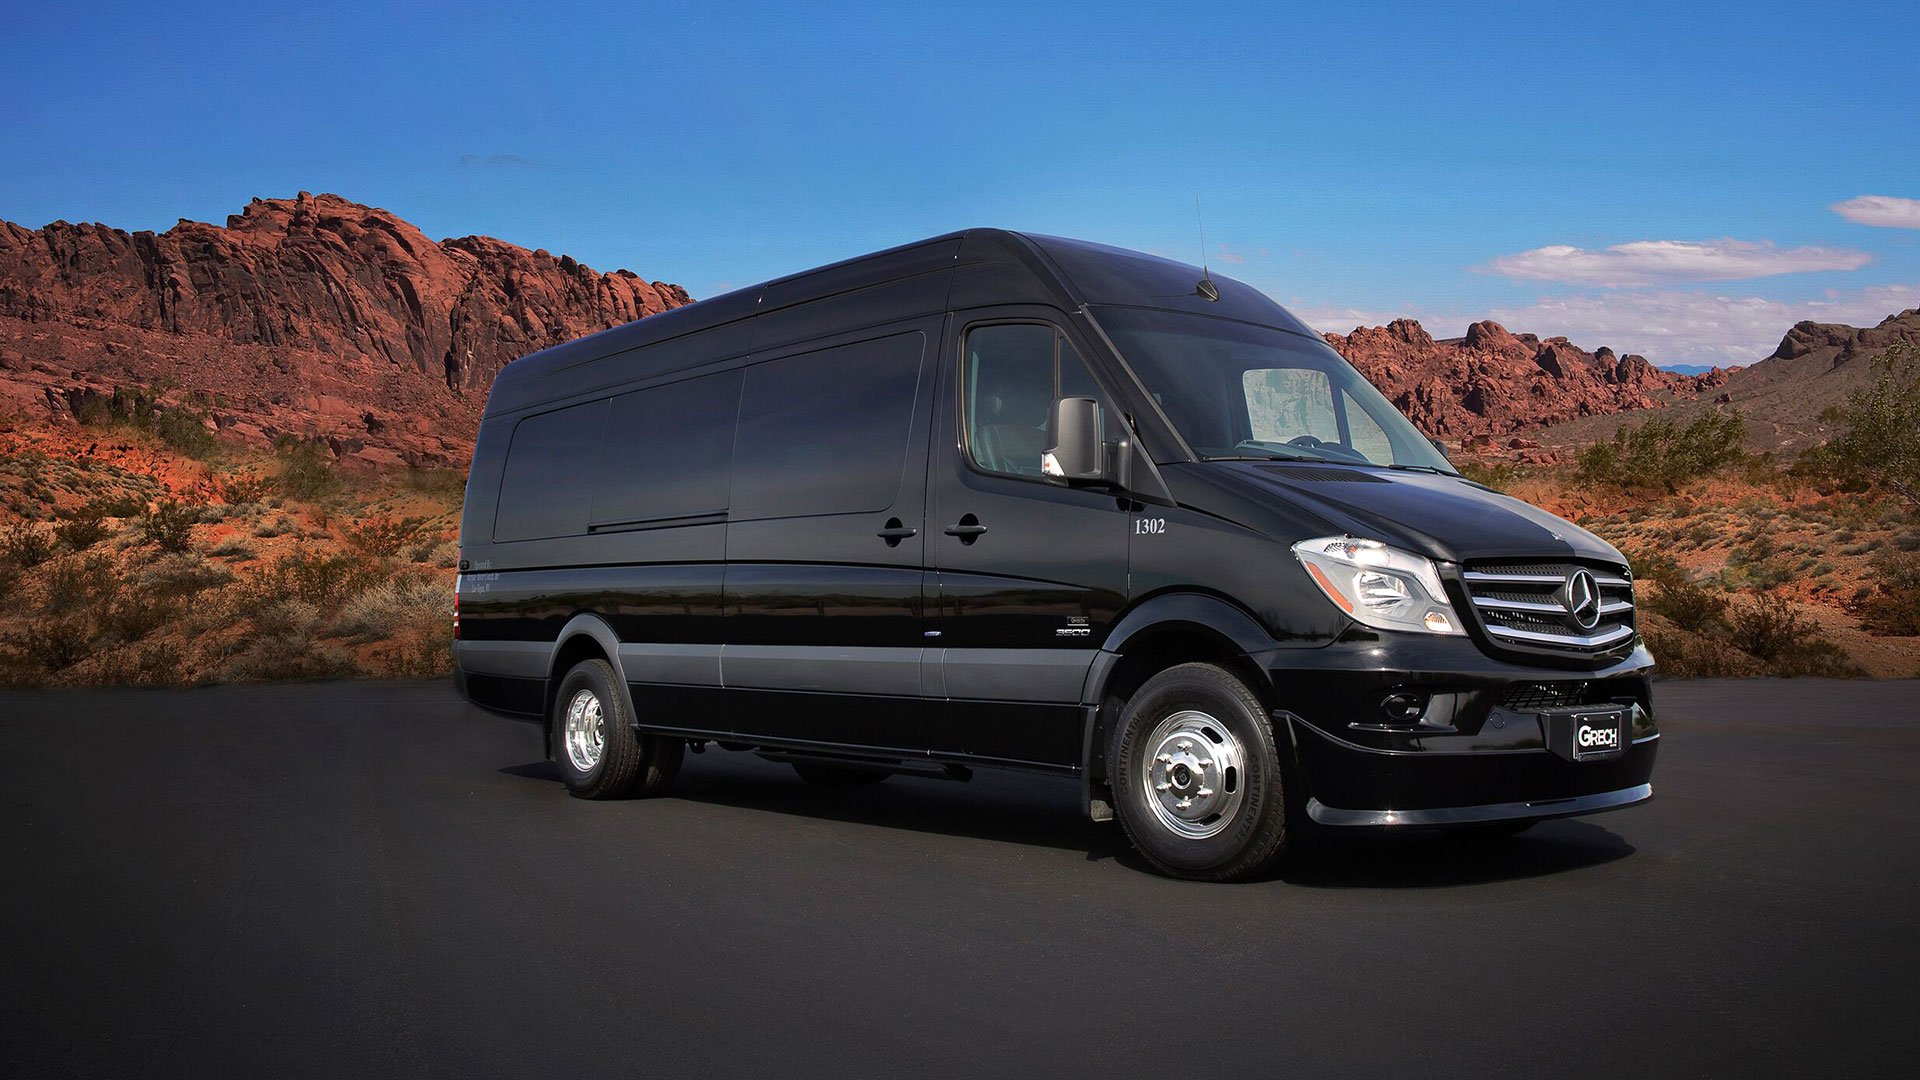 An image of a Sprinter tour vehicle in front of the Nevada Red Rocks